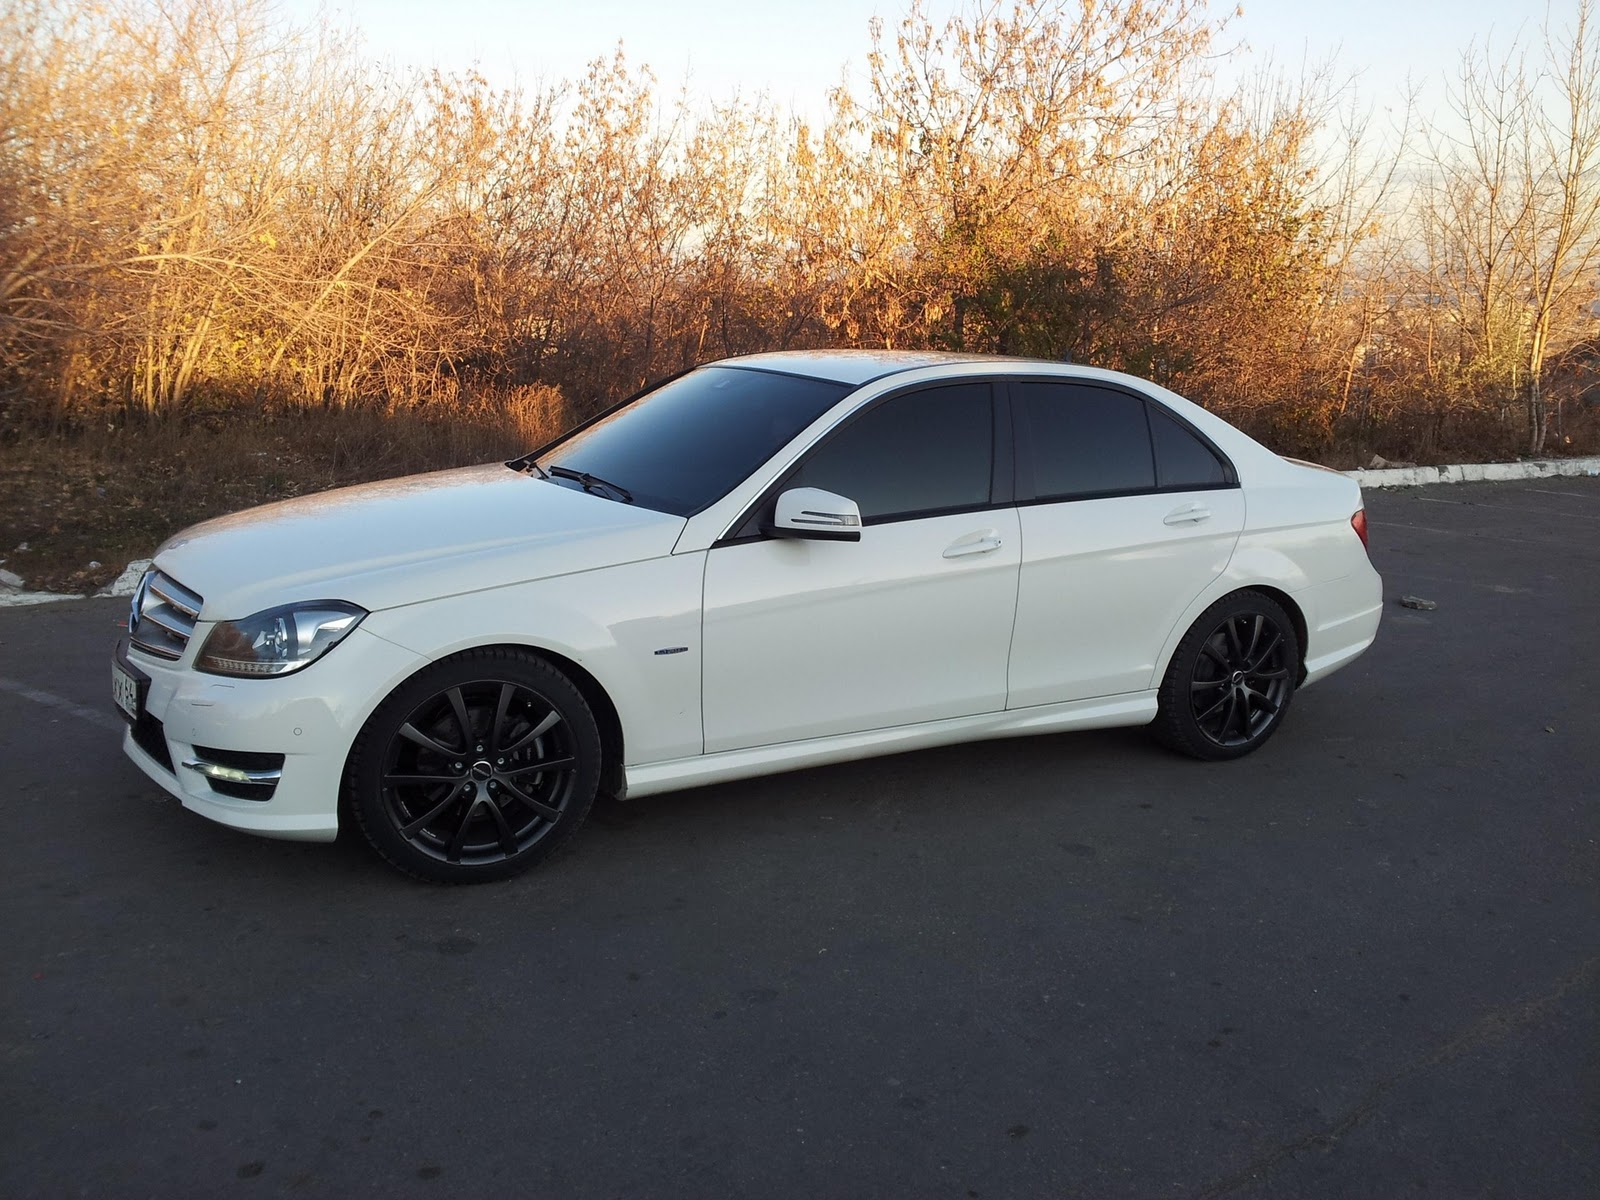 Mercedes benz c class w204 on r18 borbet wheels benztuning for Mercedes benz with rims